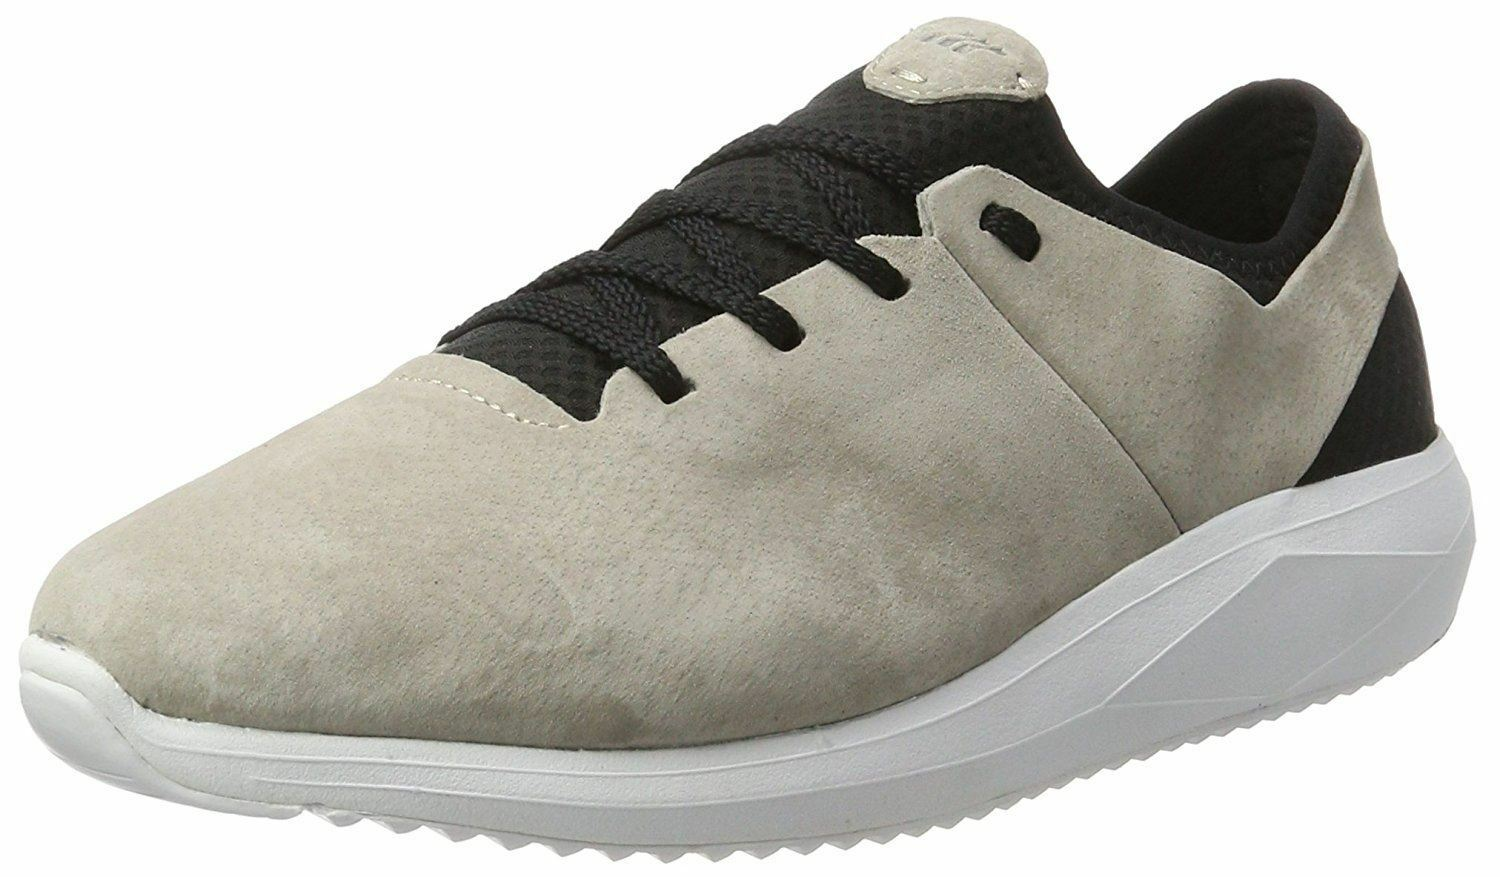 Boxfresh Ceza Trainers Gris Negro Hombre Suede Trainers Ceza Zapatos 8432c9